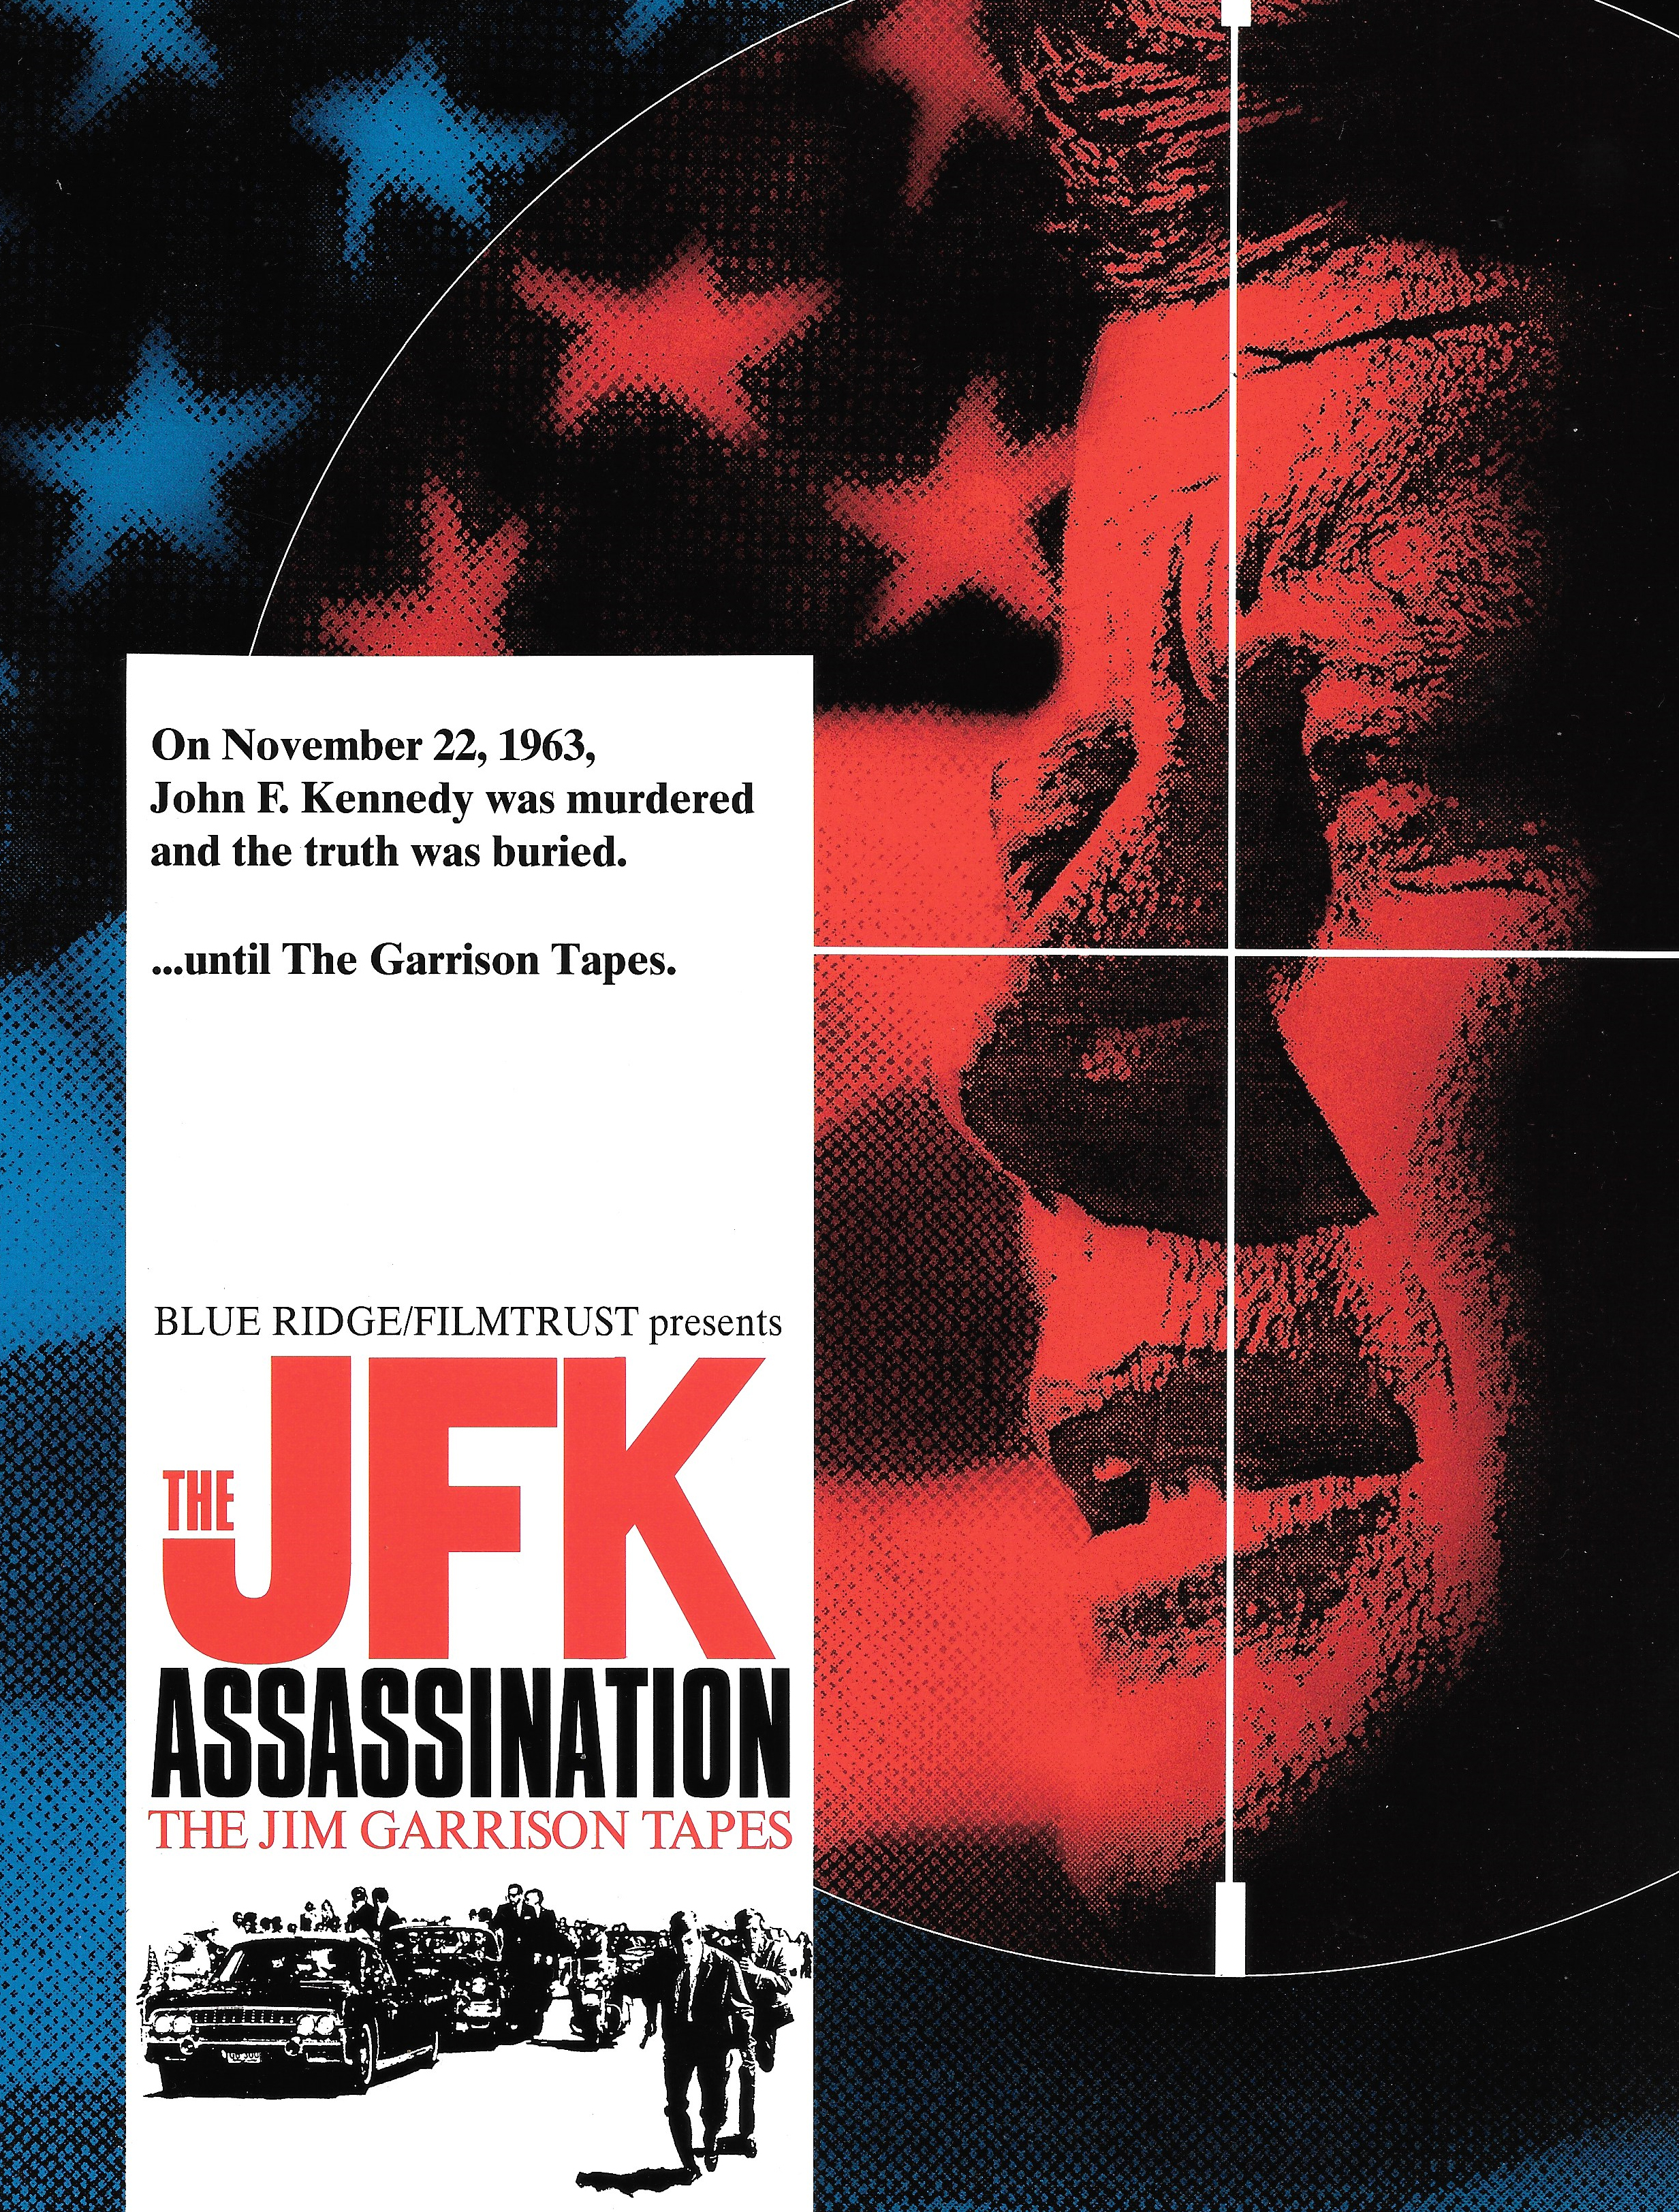 John F. Kennedy in The JFK Assassination: The Jim Garrison Tapes (1992)